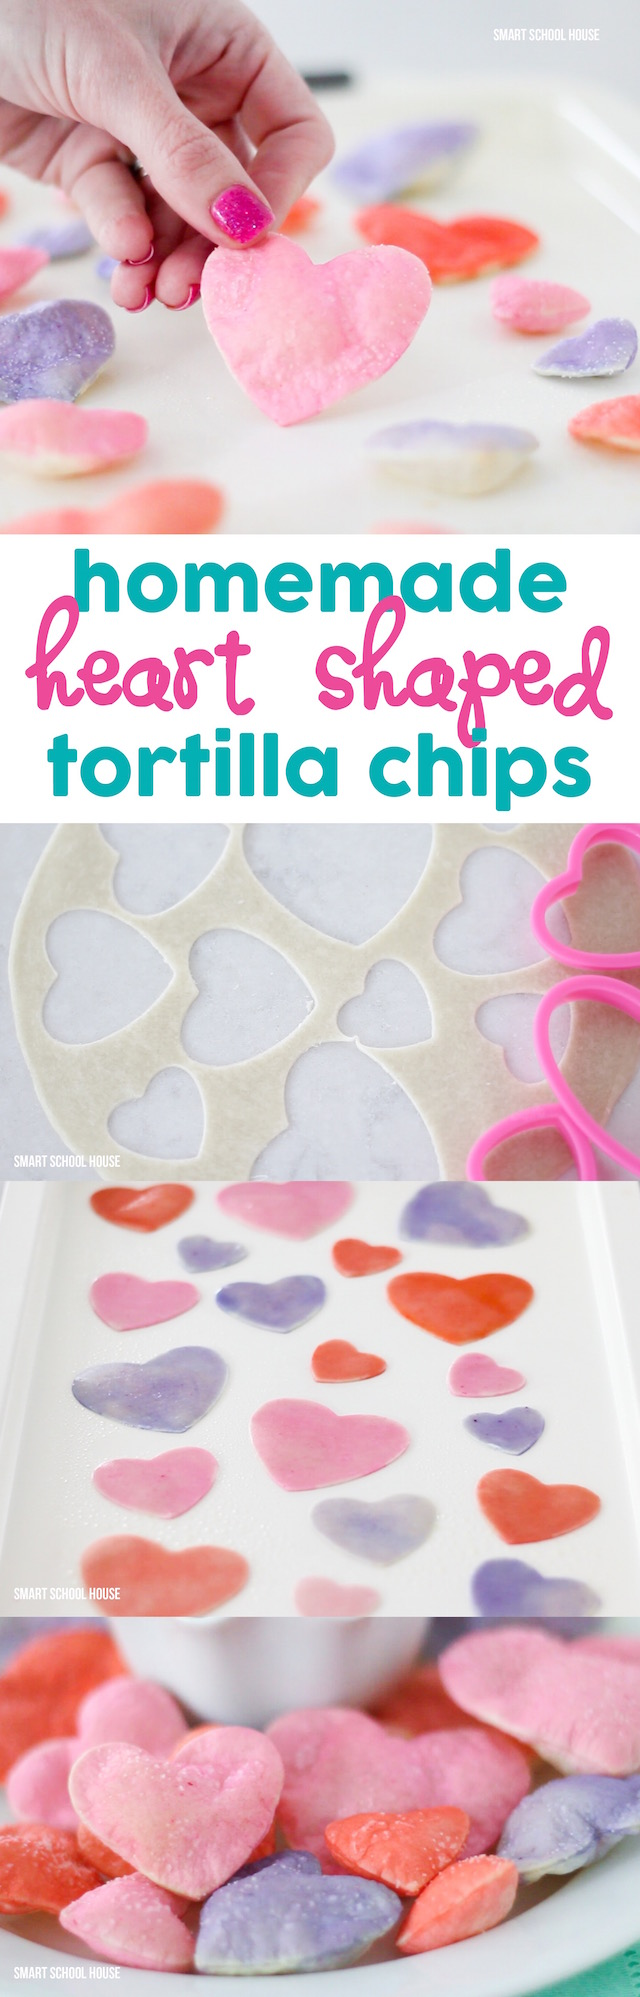 DIY Heart Shaped Tortilla Chips - for Valentine's Day. So colorful and so EASY to make! Must try- #ValentinesDay #ValentinesDayRecipe #ValentinesRecipe #ValentinesCraft #DIYValentinesDay